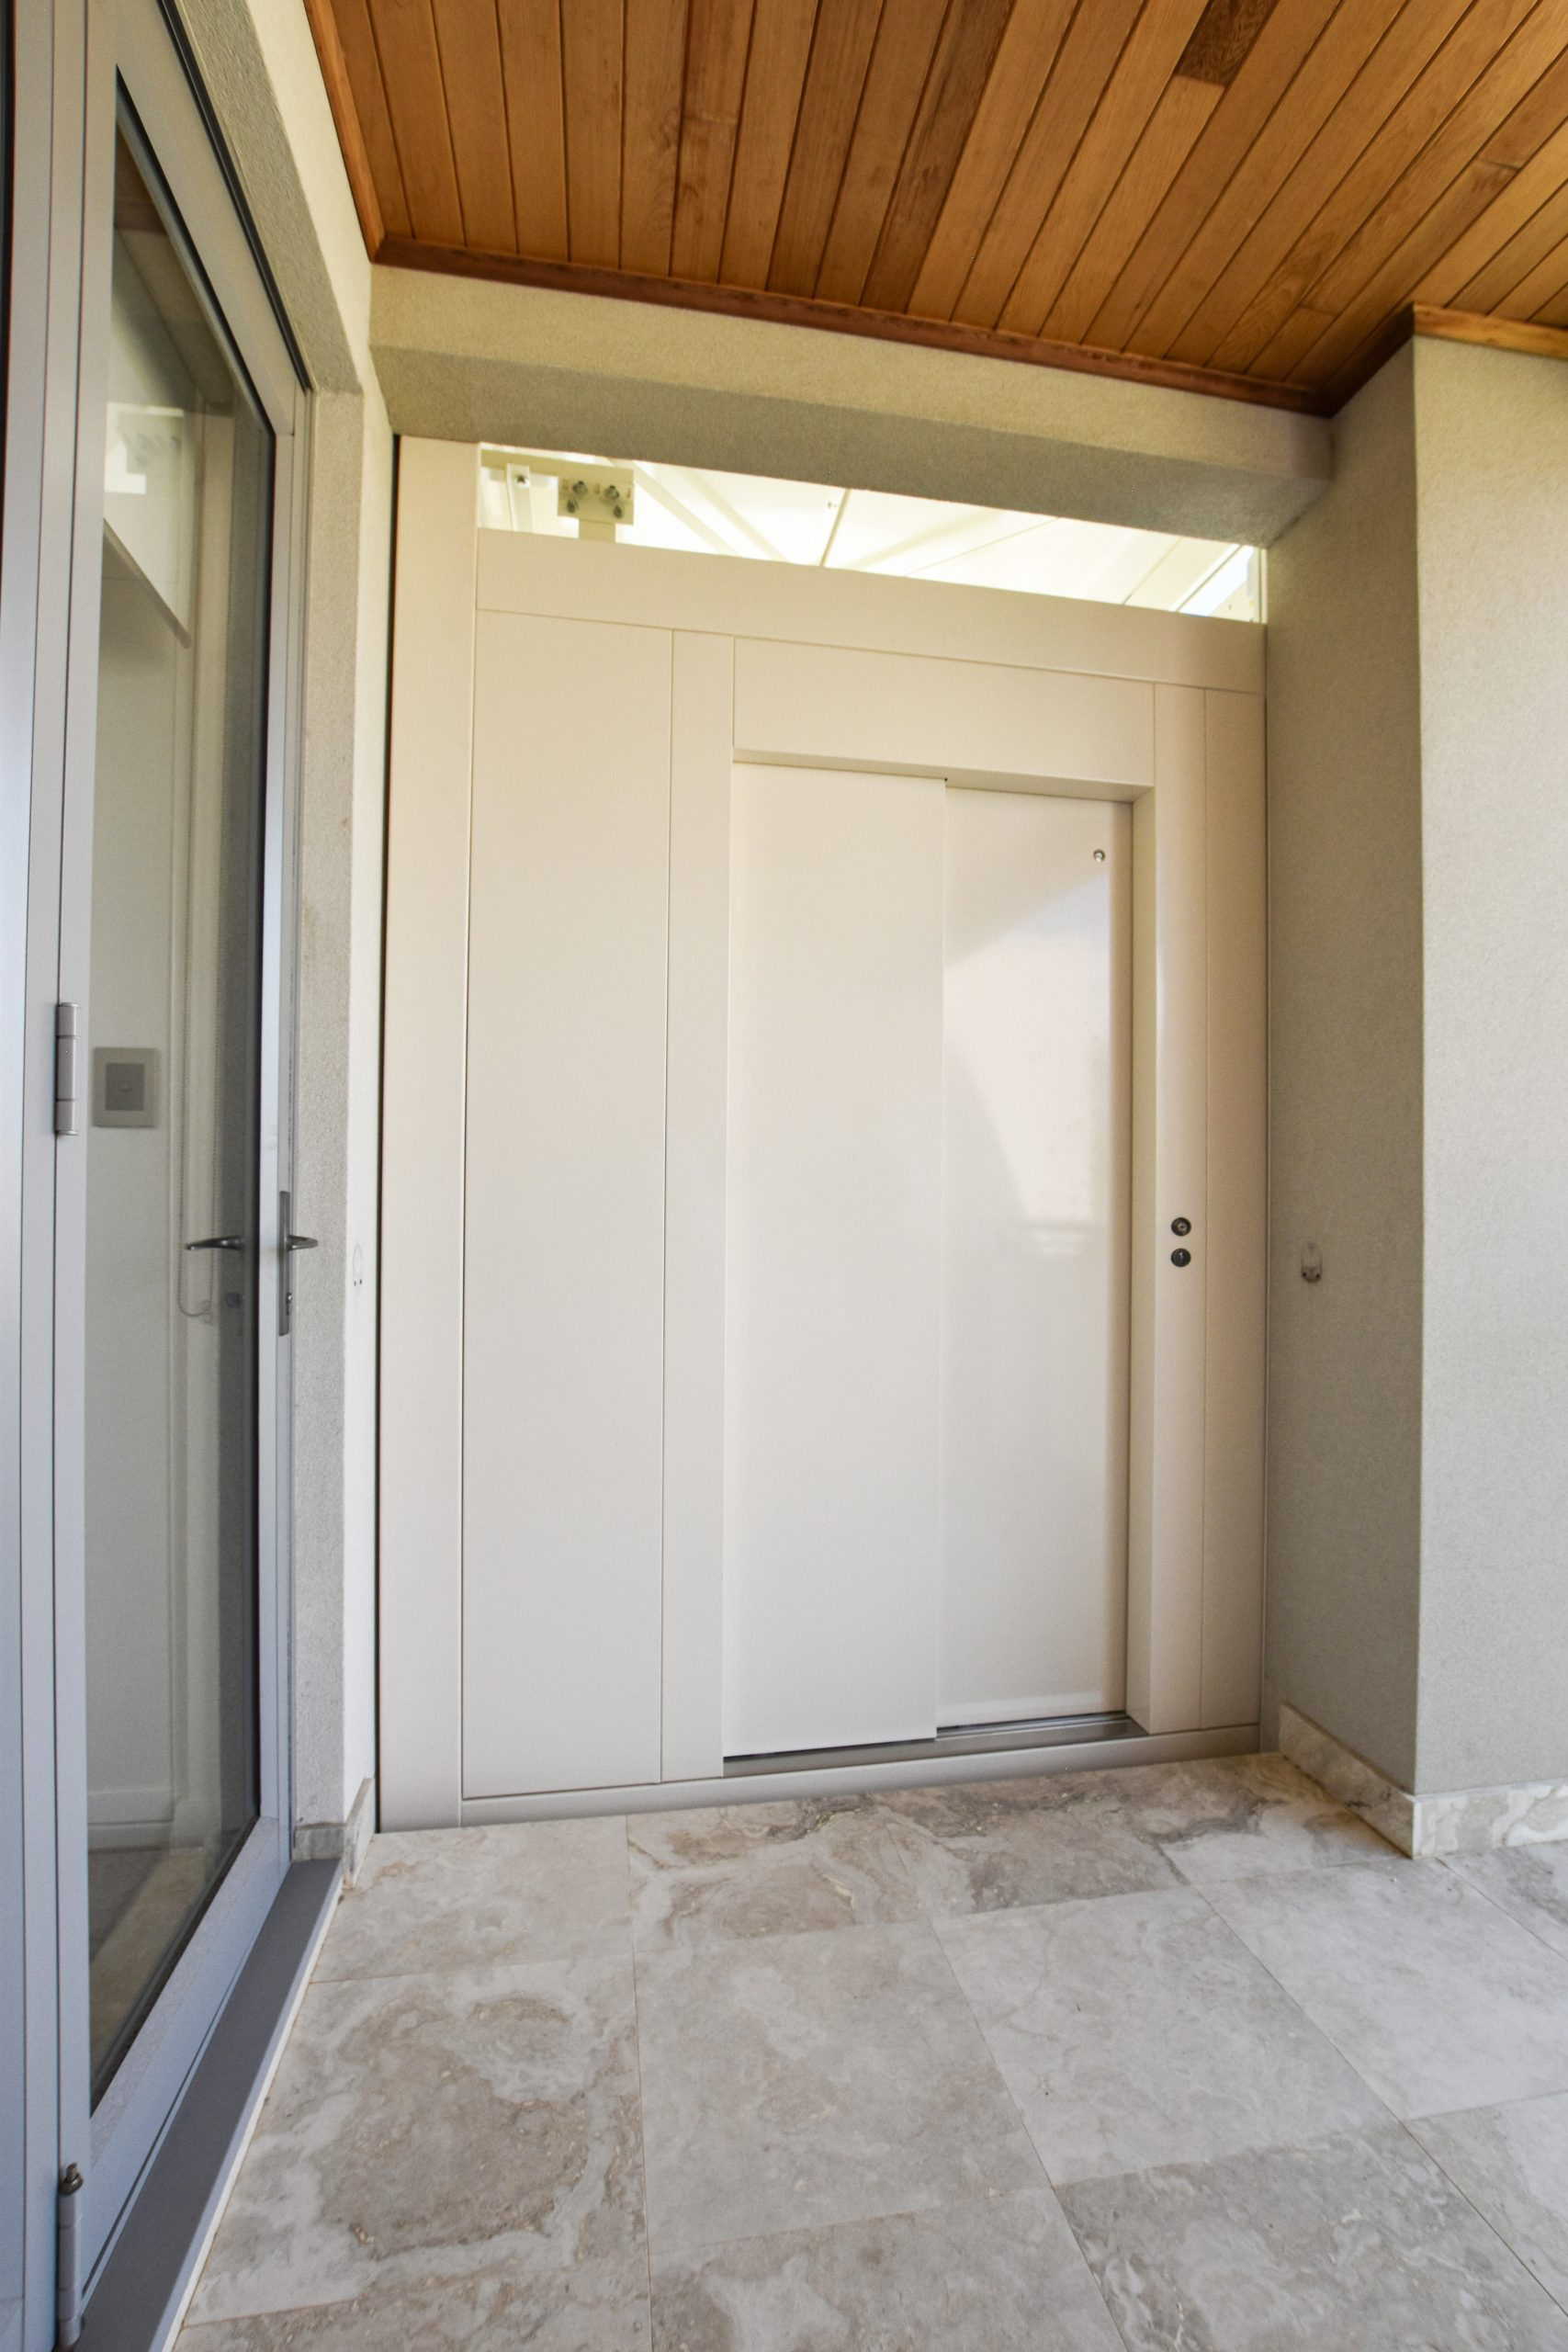 after- how to retrofit a home lift